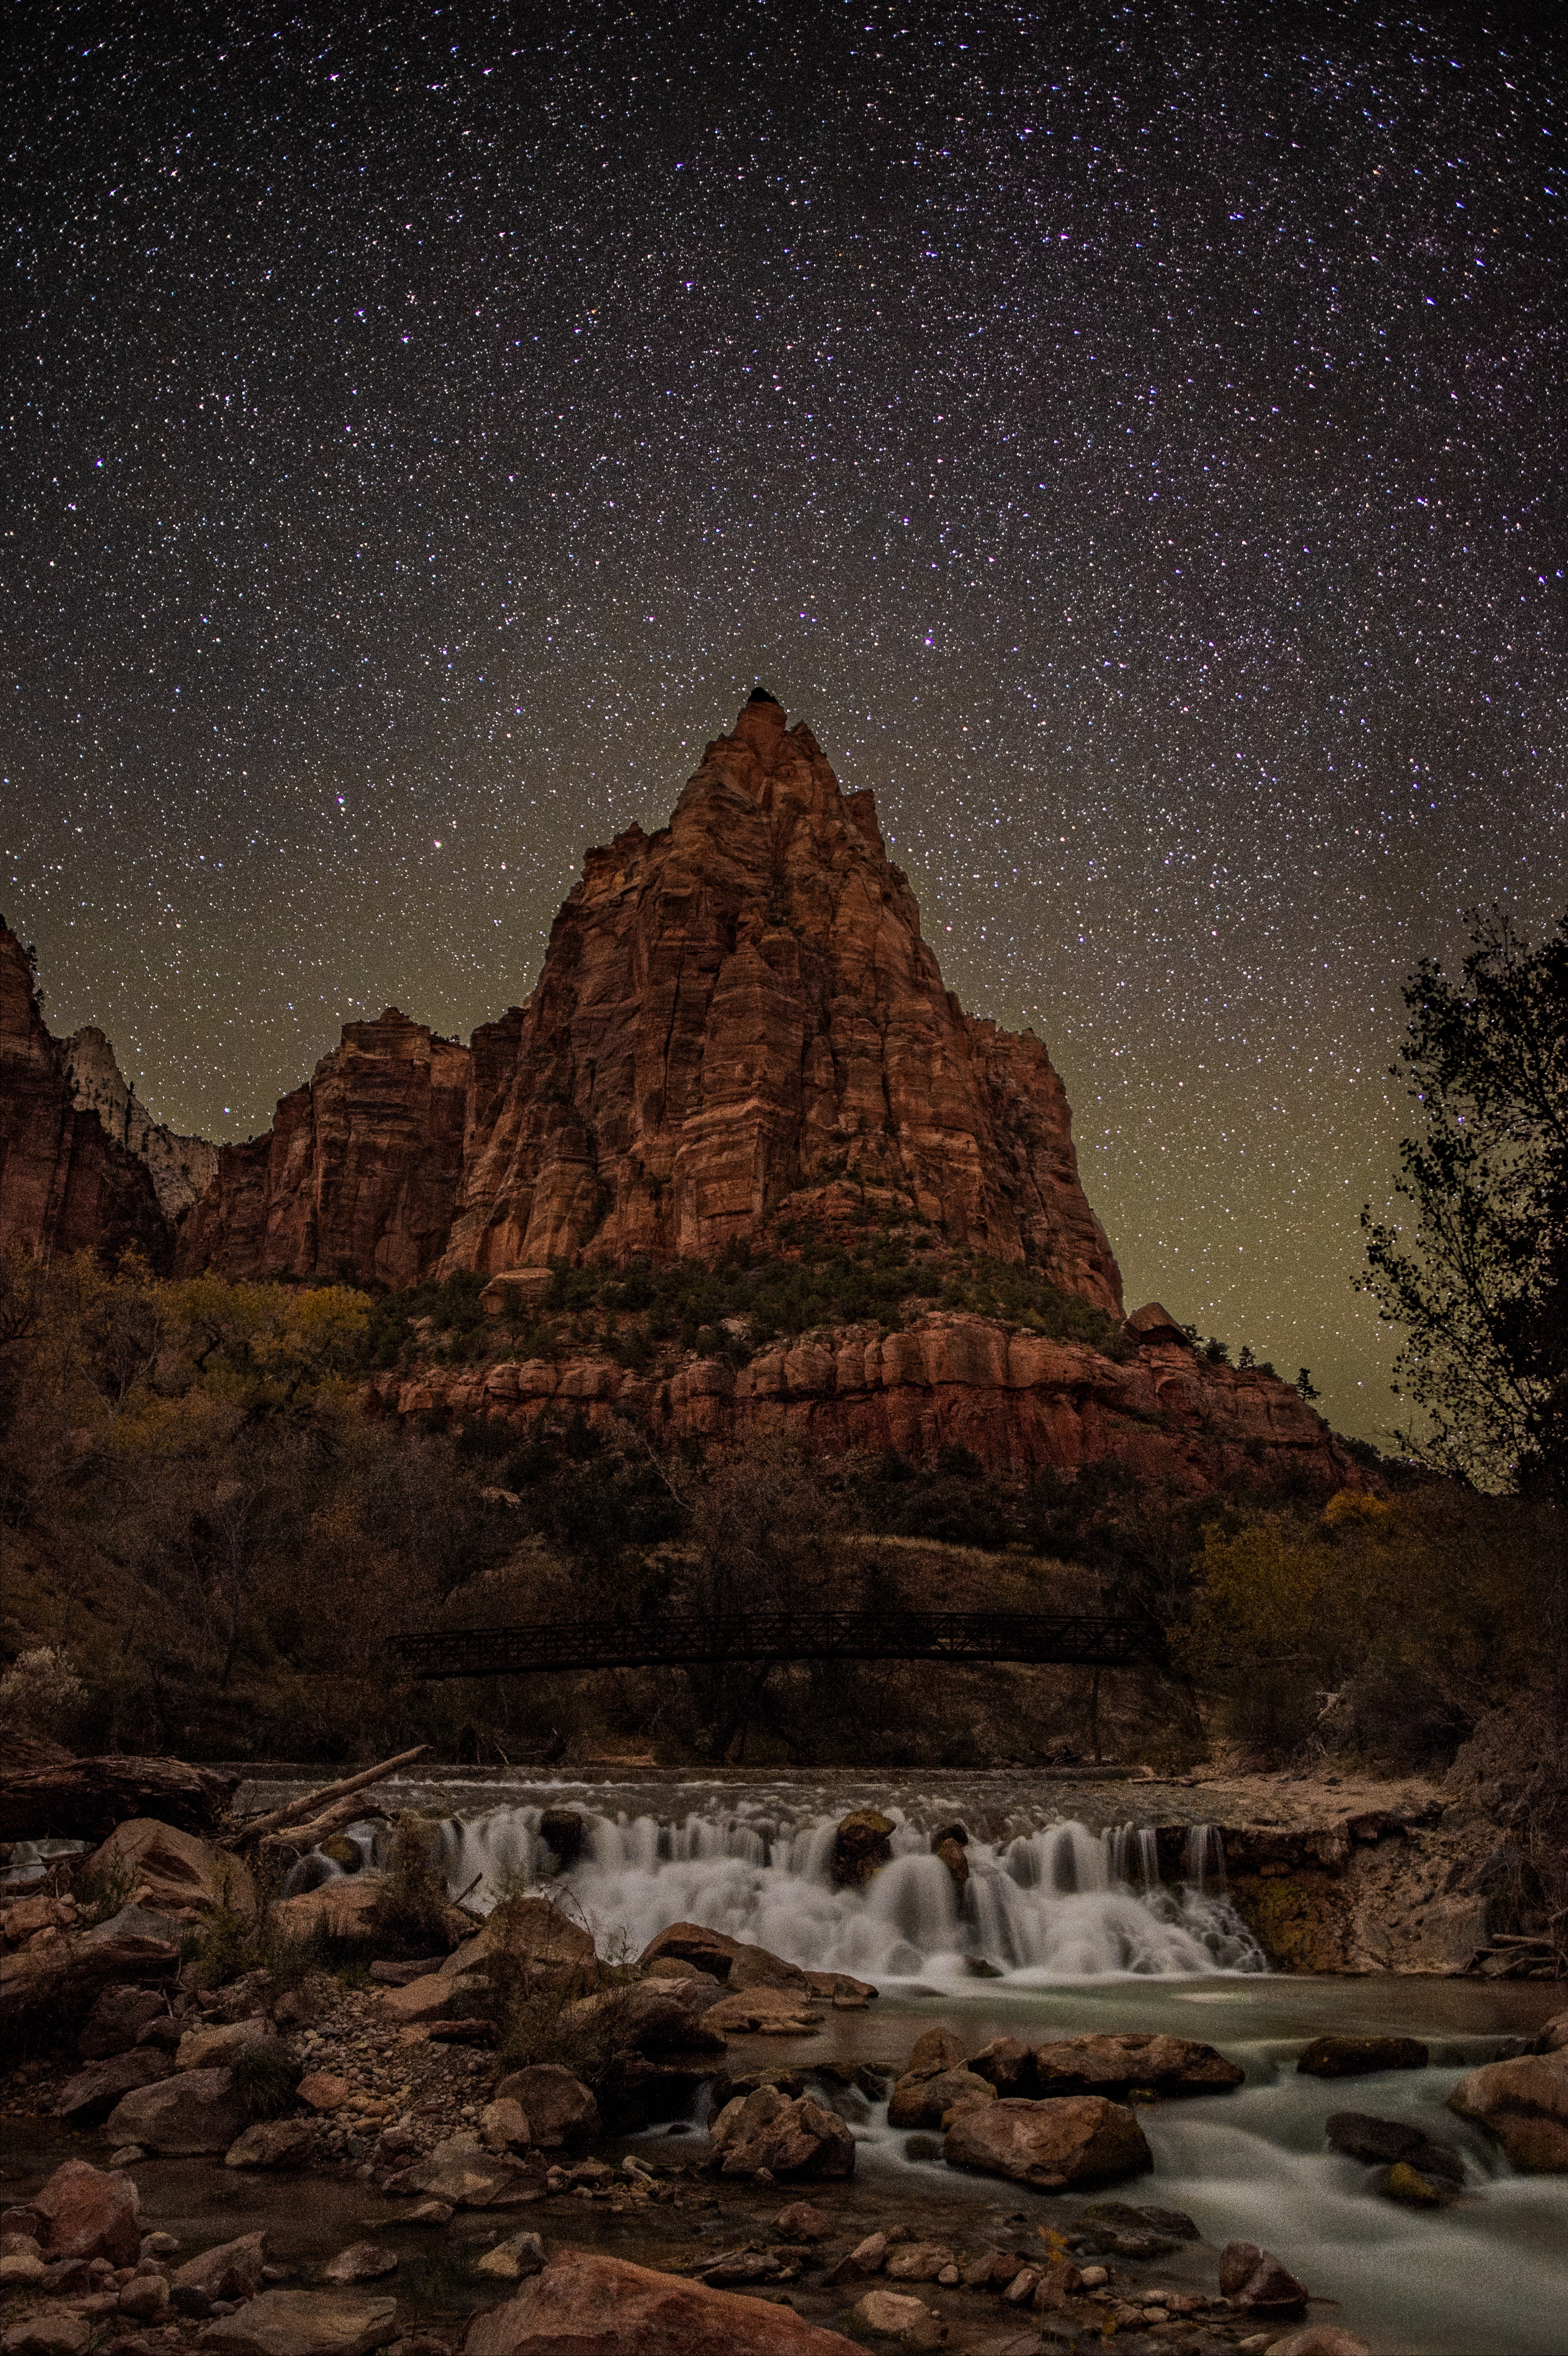 timelapse photography of river overlooking rock mountain at night time